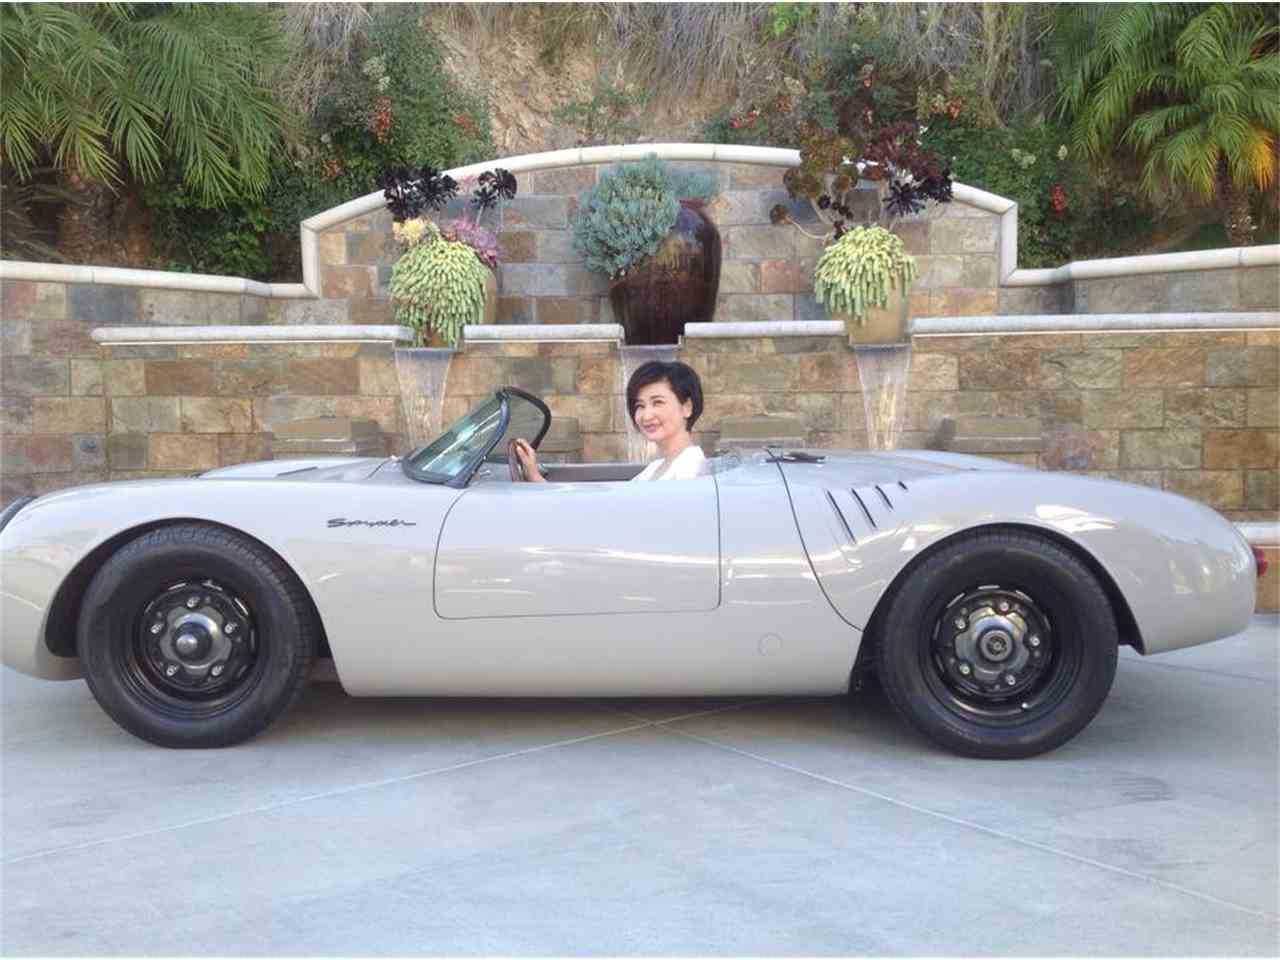 2014 Porsche 550 Spyder Replica For Sale Classiccars Com